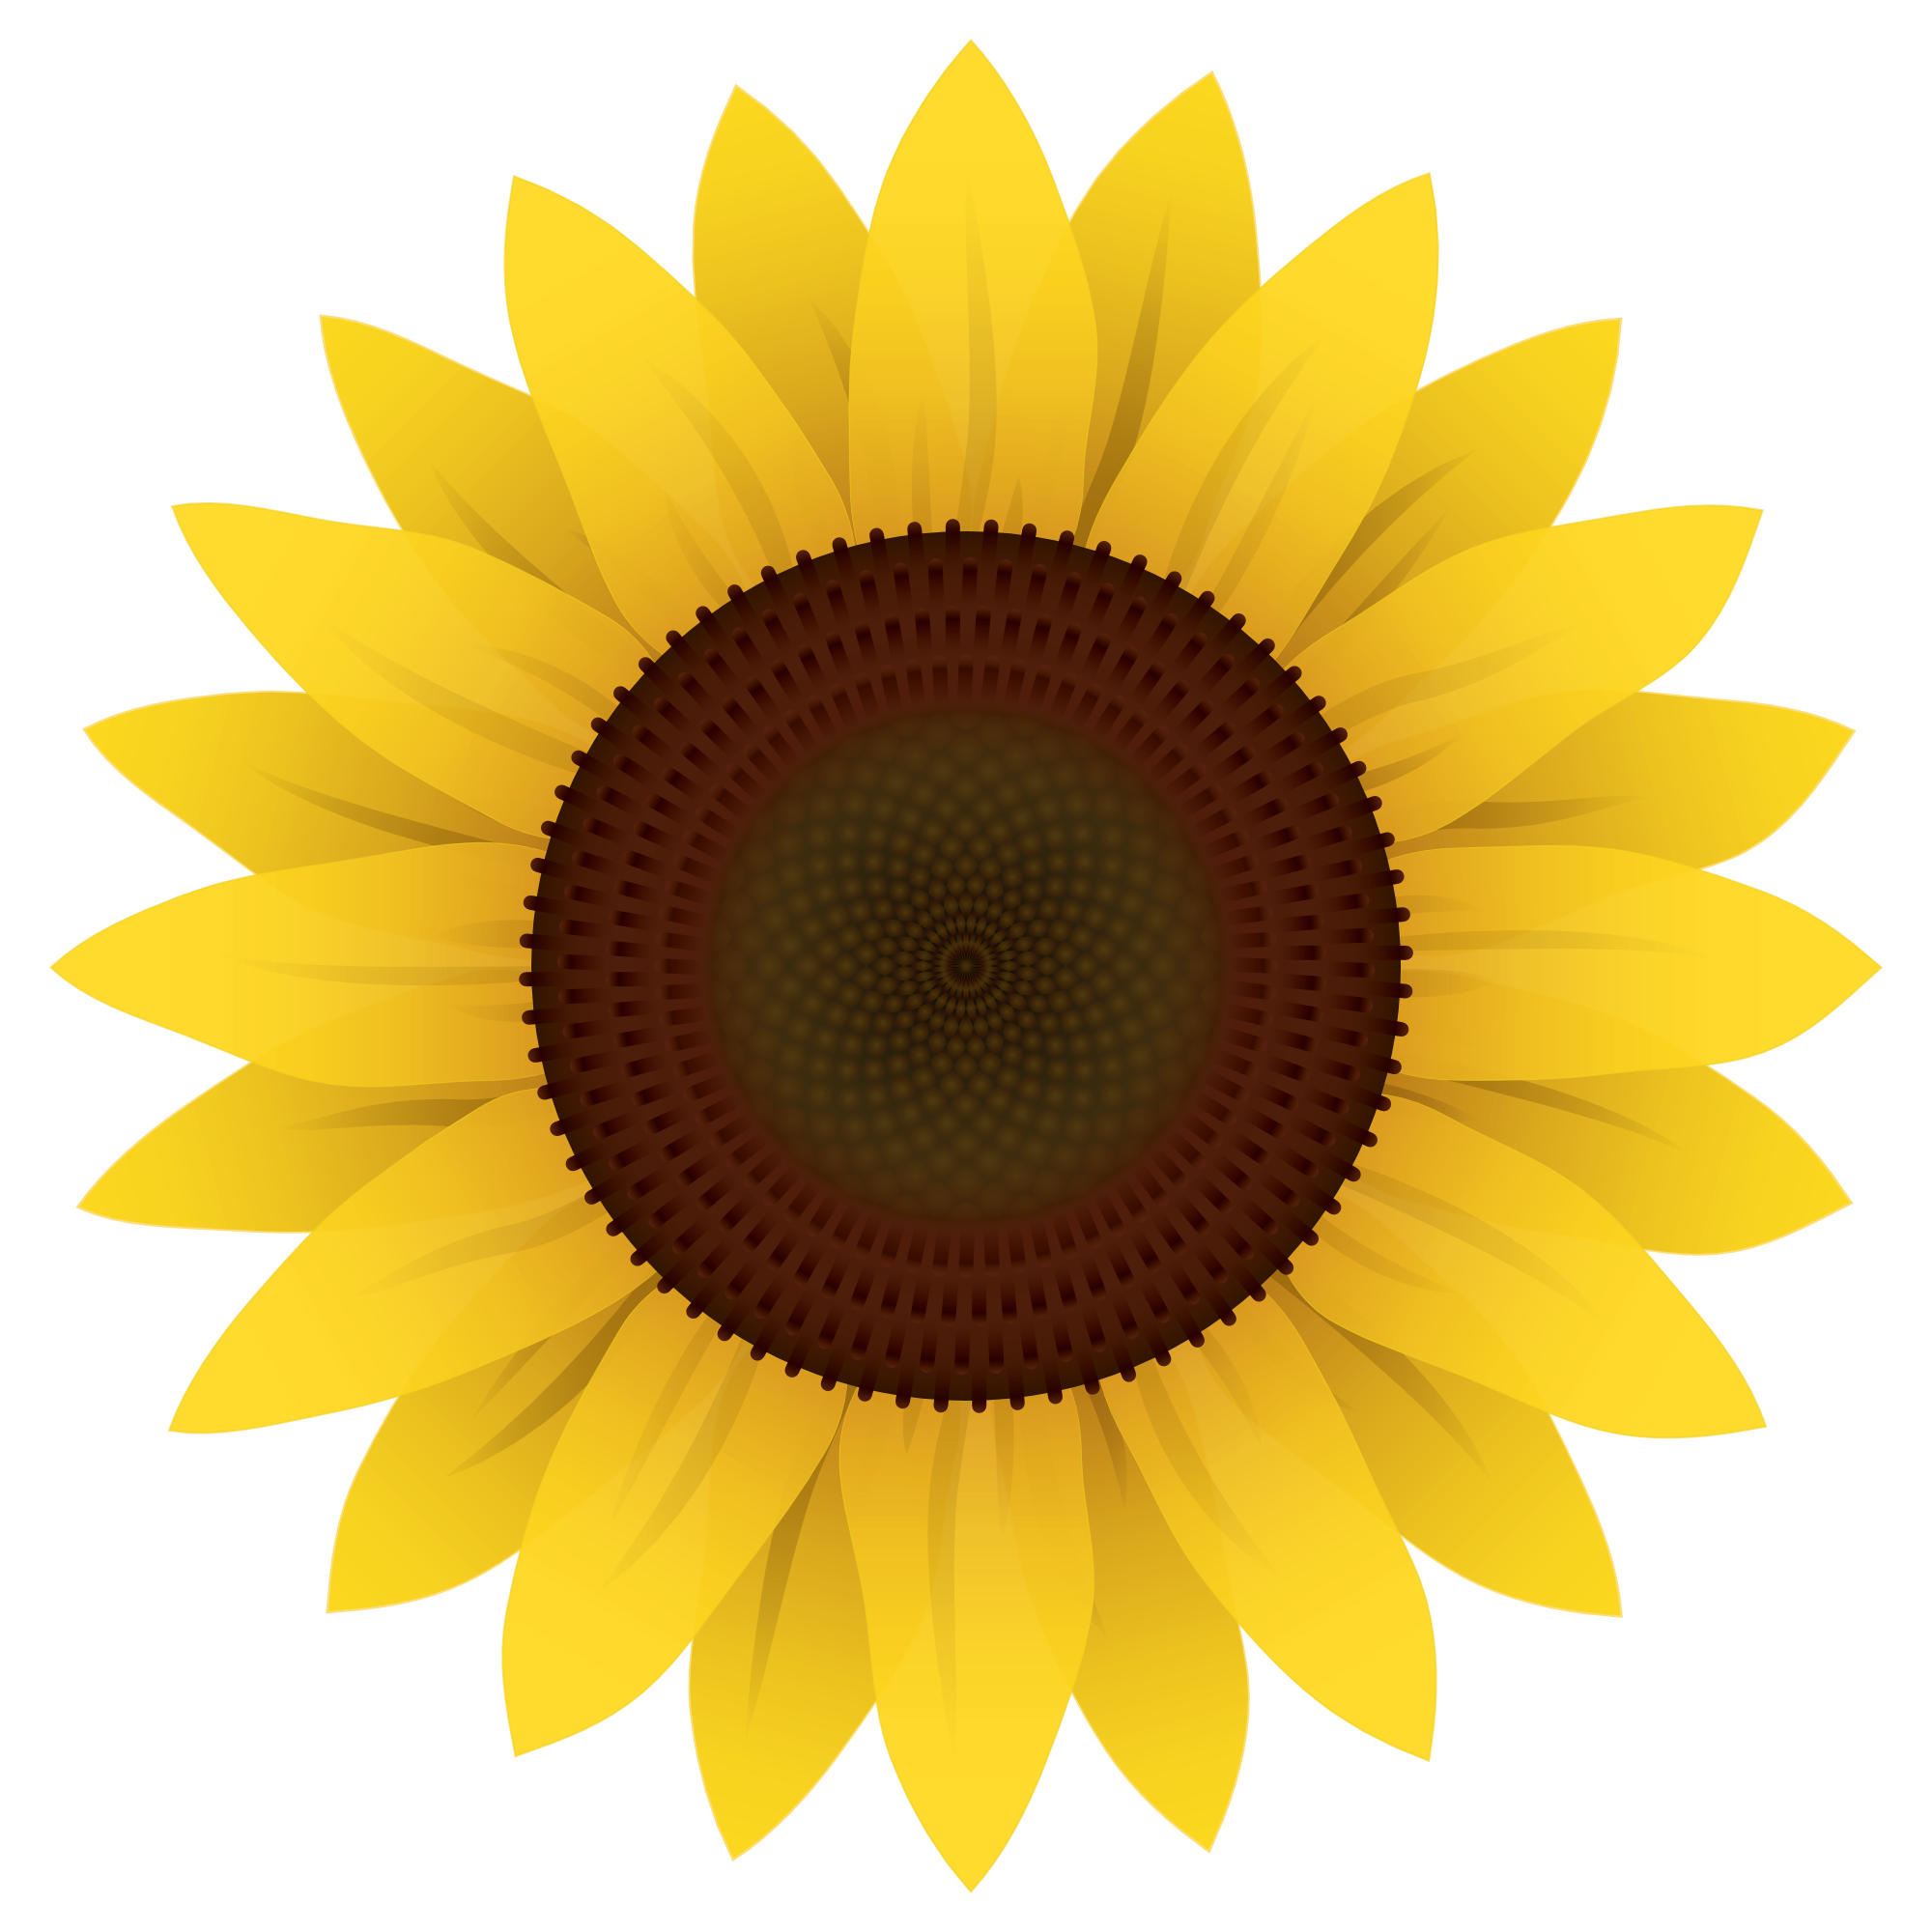 Sunflower Vector PNG Image.